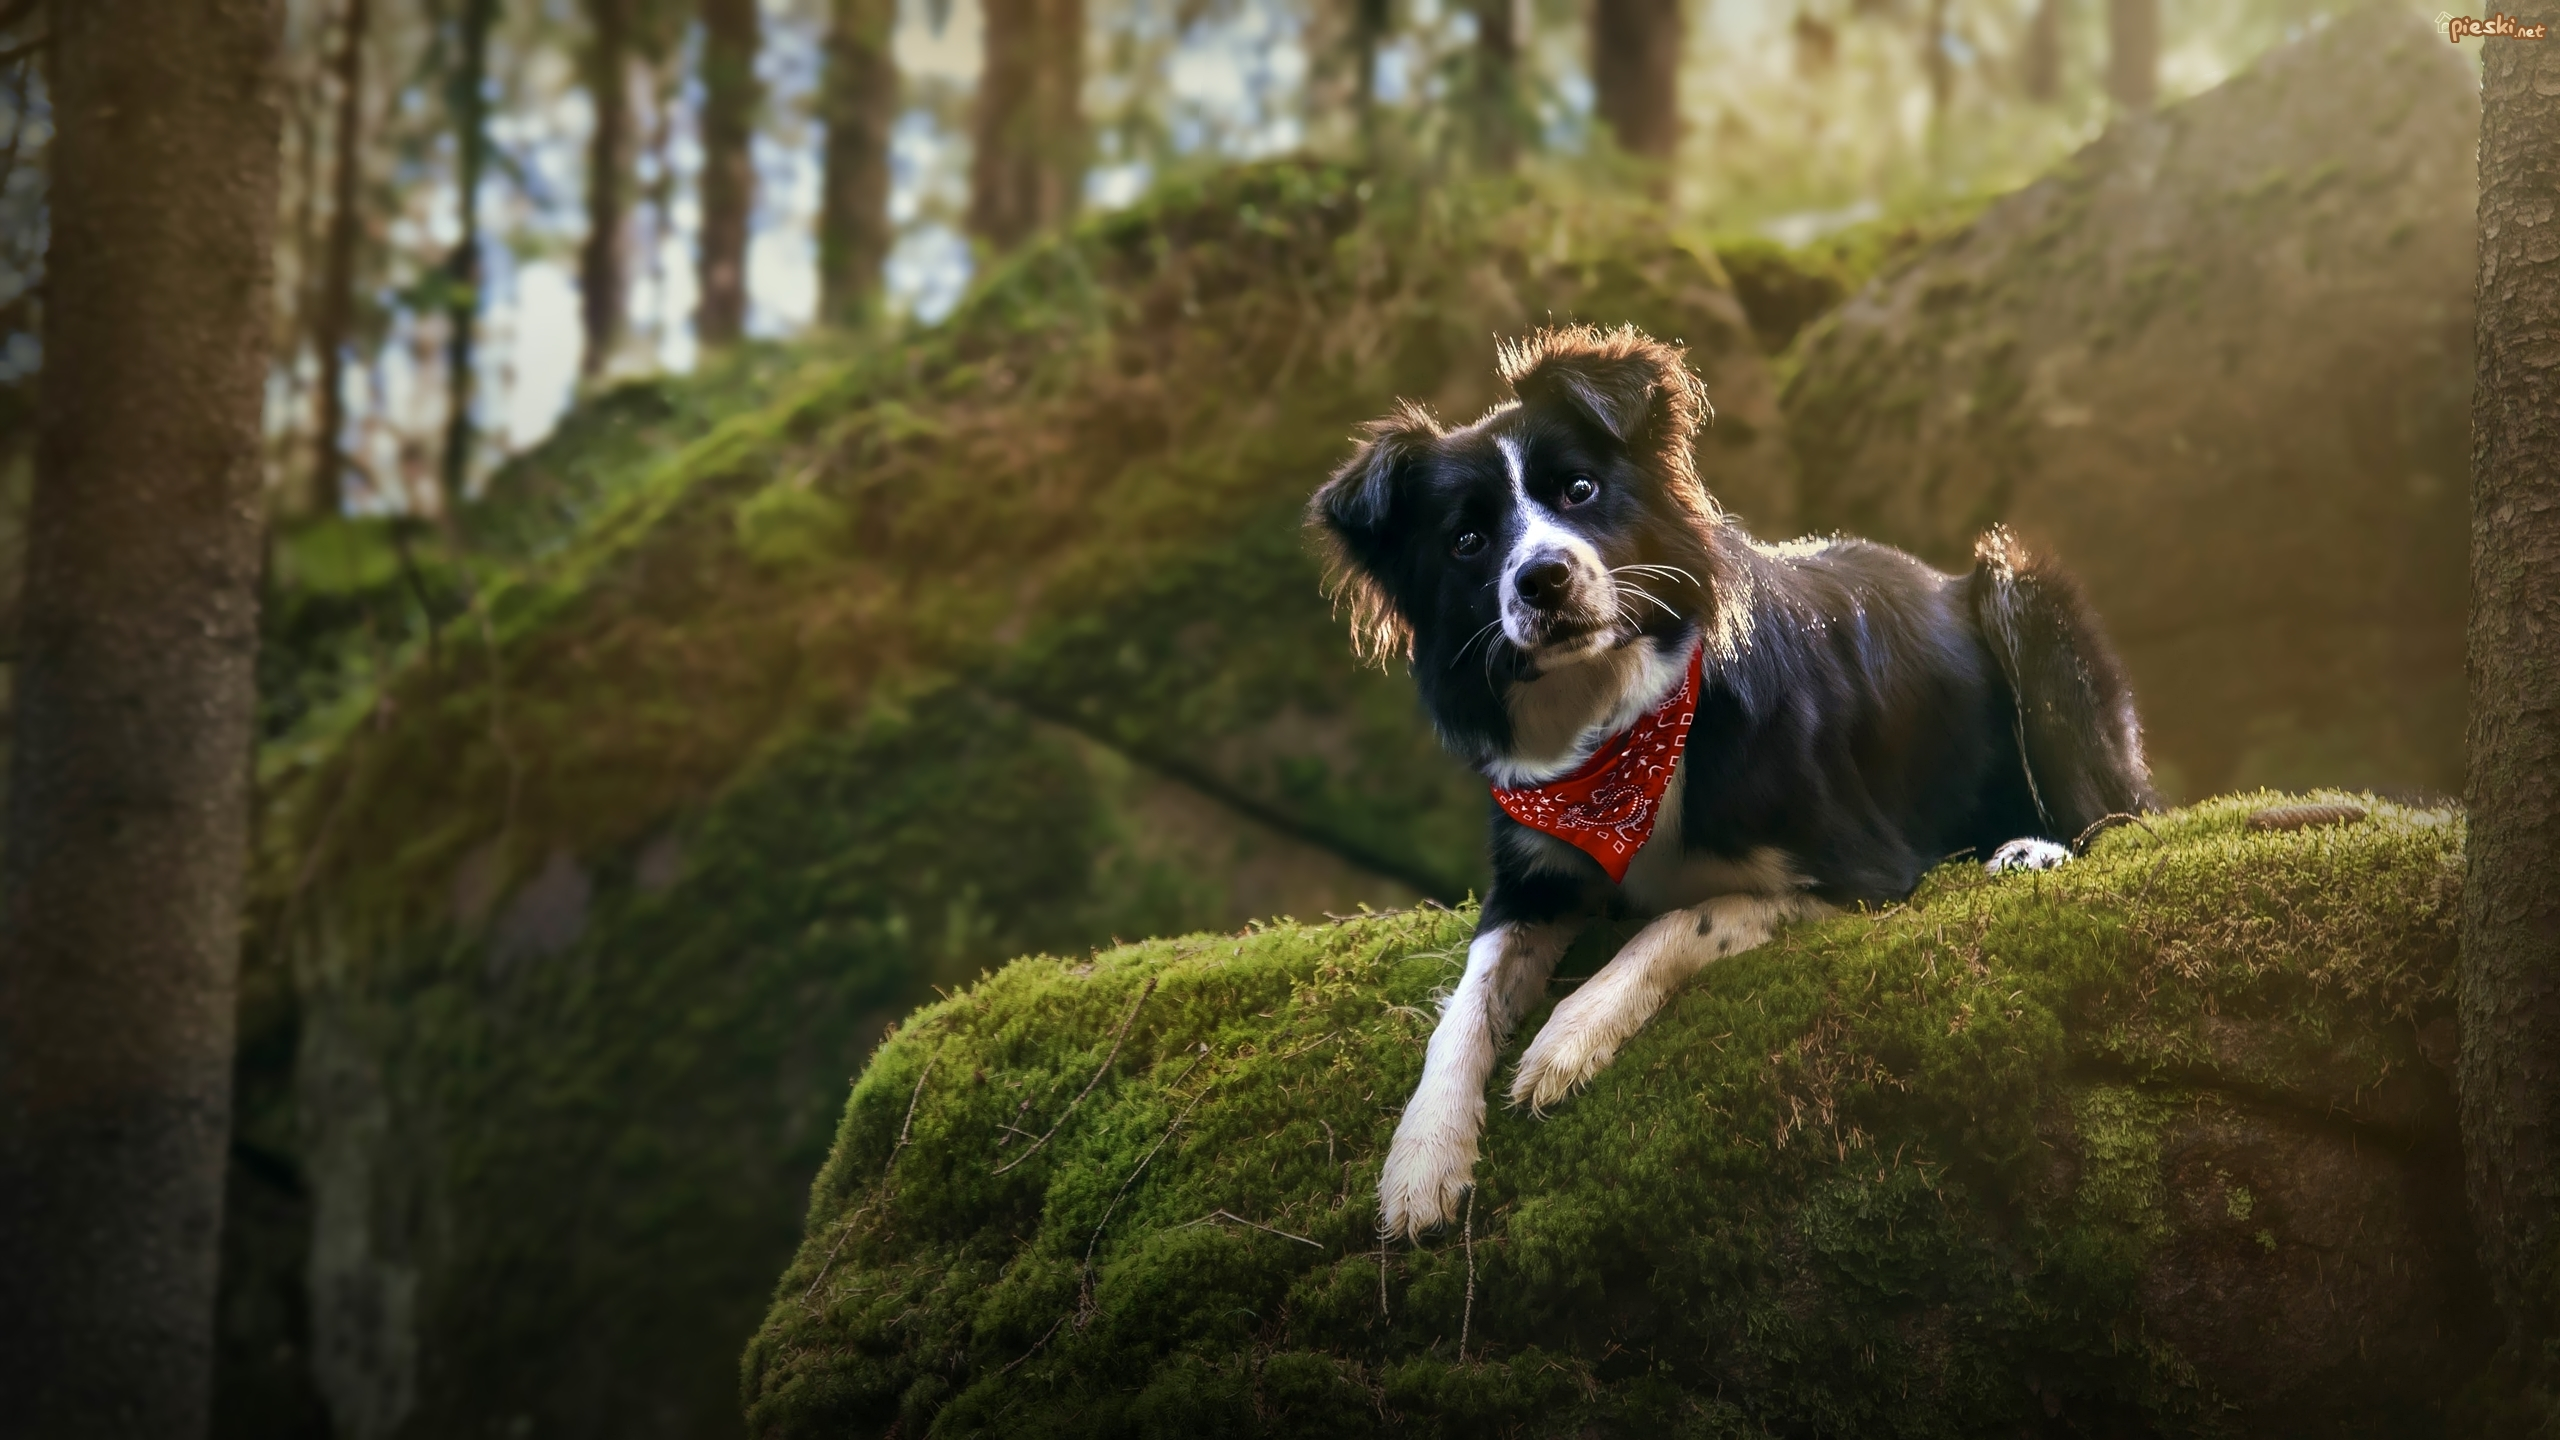 Pies, Border collie, Chustka, Omszała, Skała